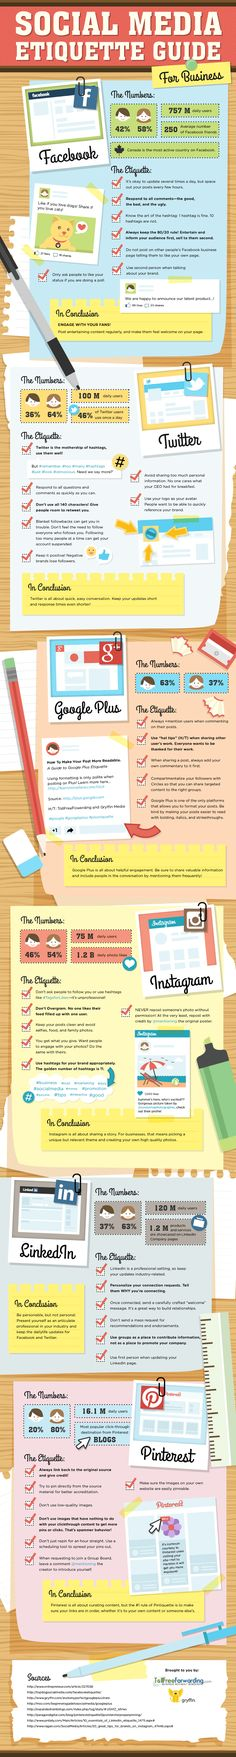 Social Media Etiquette Guide for Businesses (but great info for EDU too)